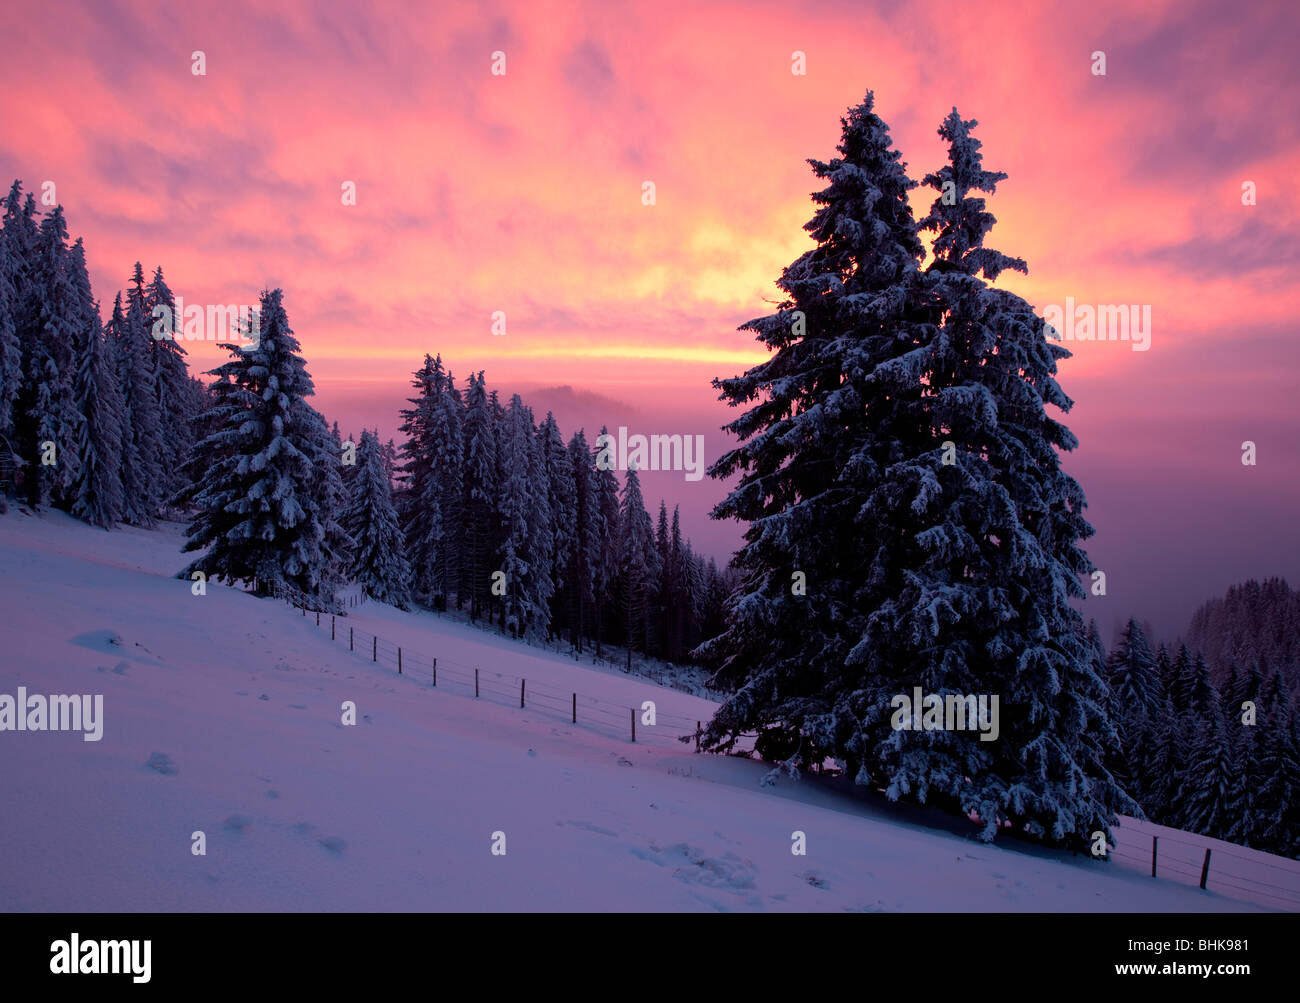 red sky in winter with snow on spruces trees in fog on a mountain pasture - Stock Image